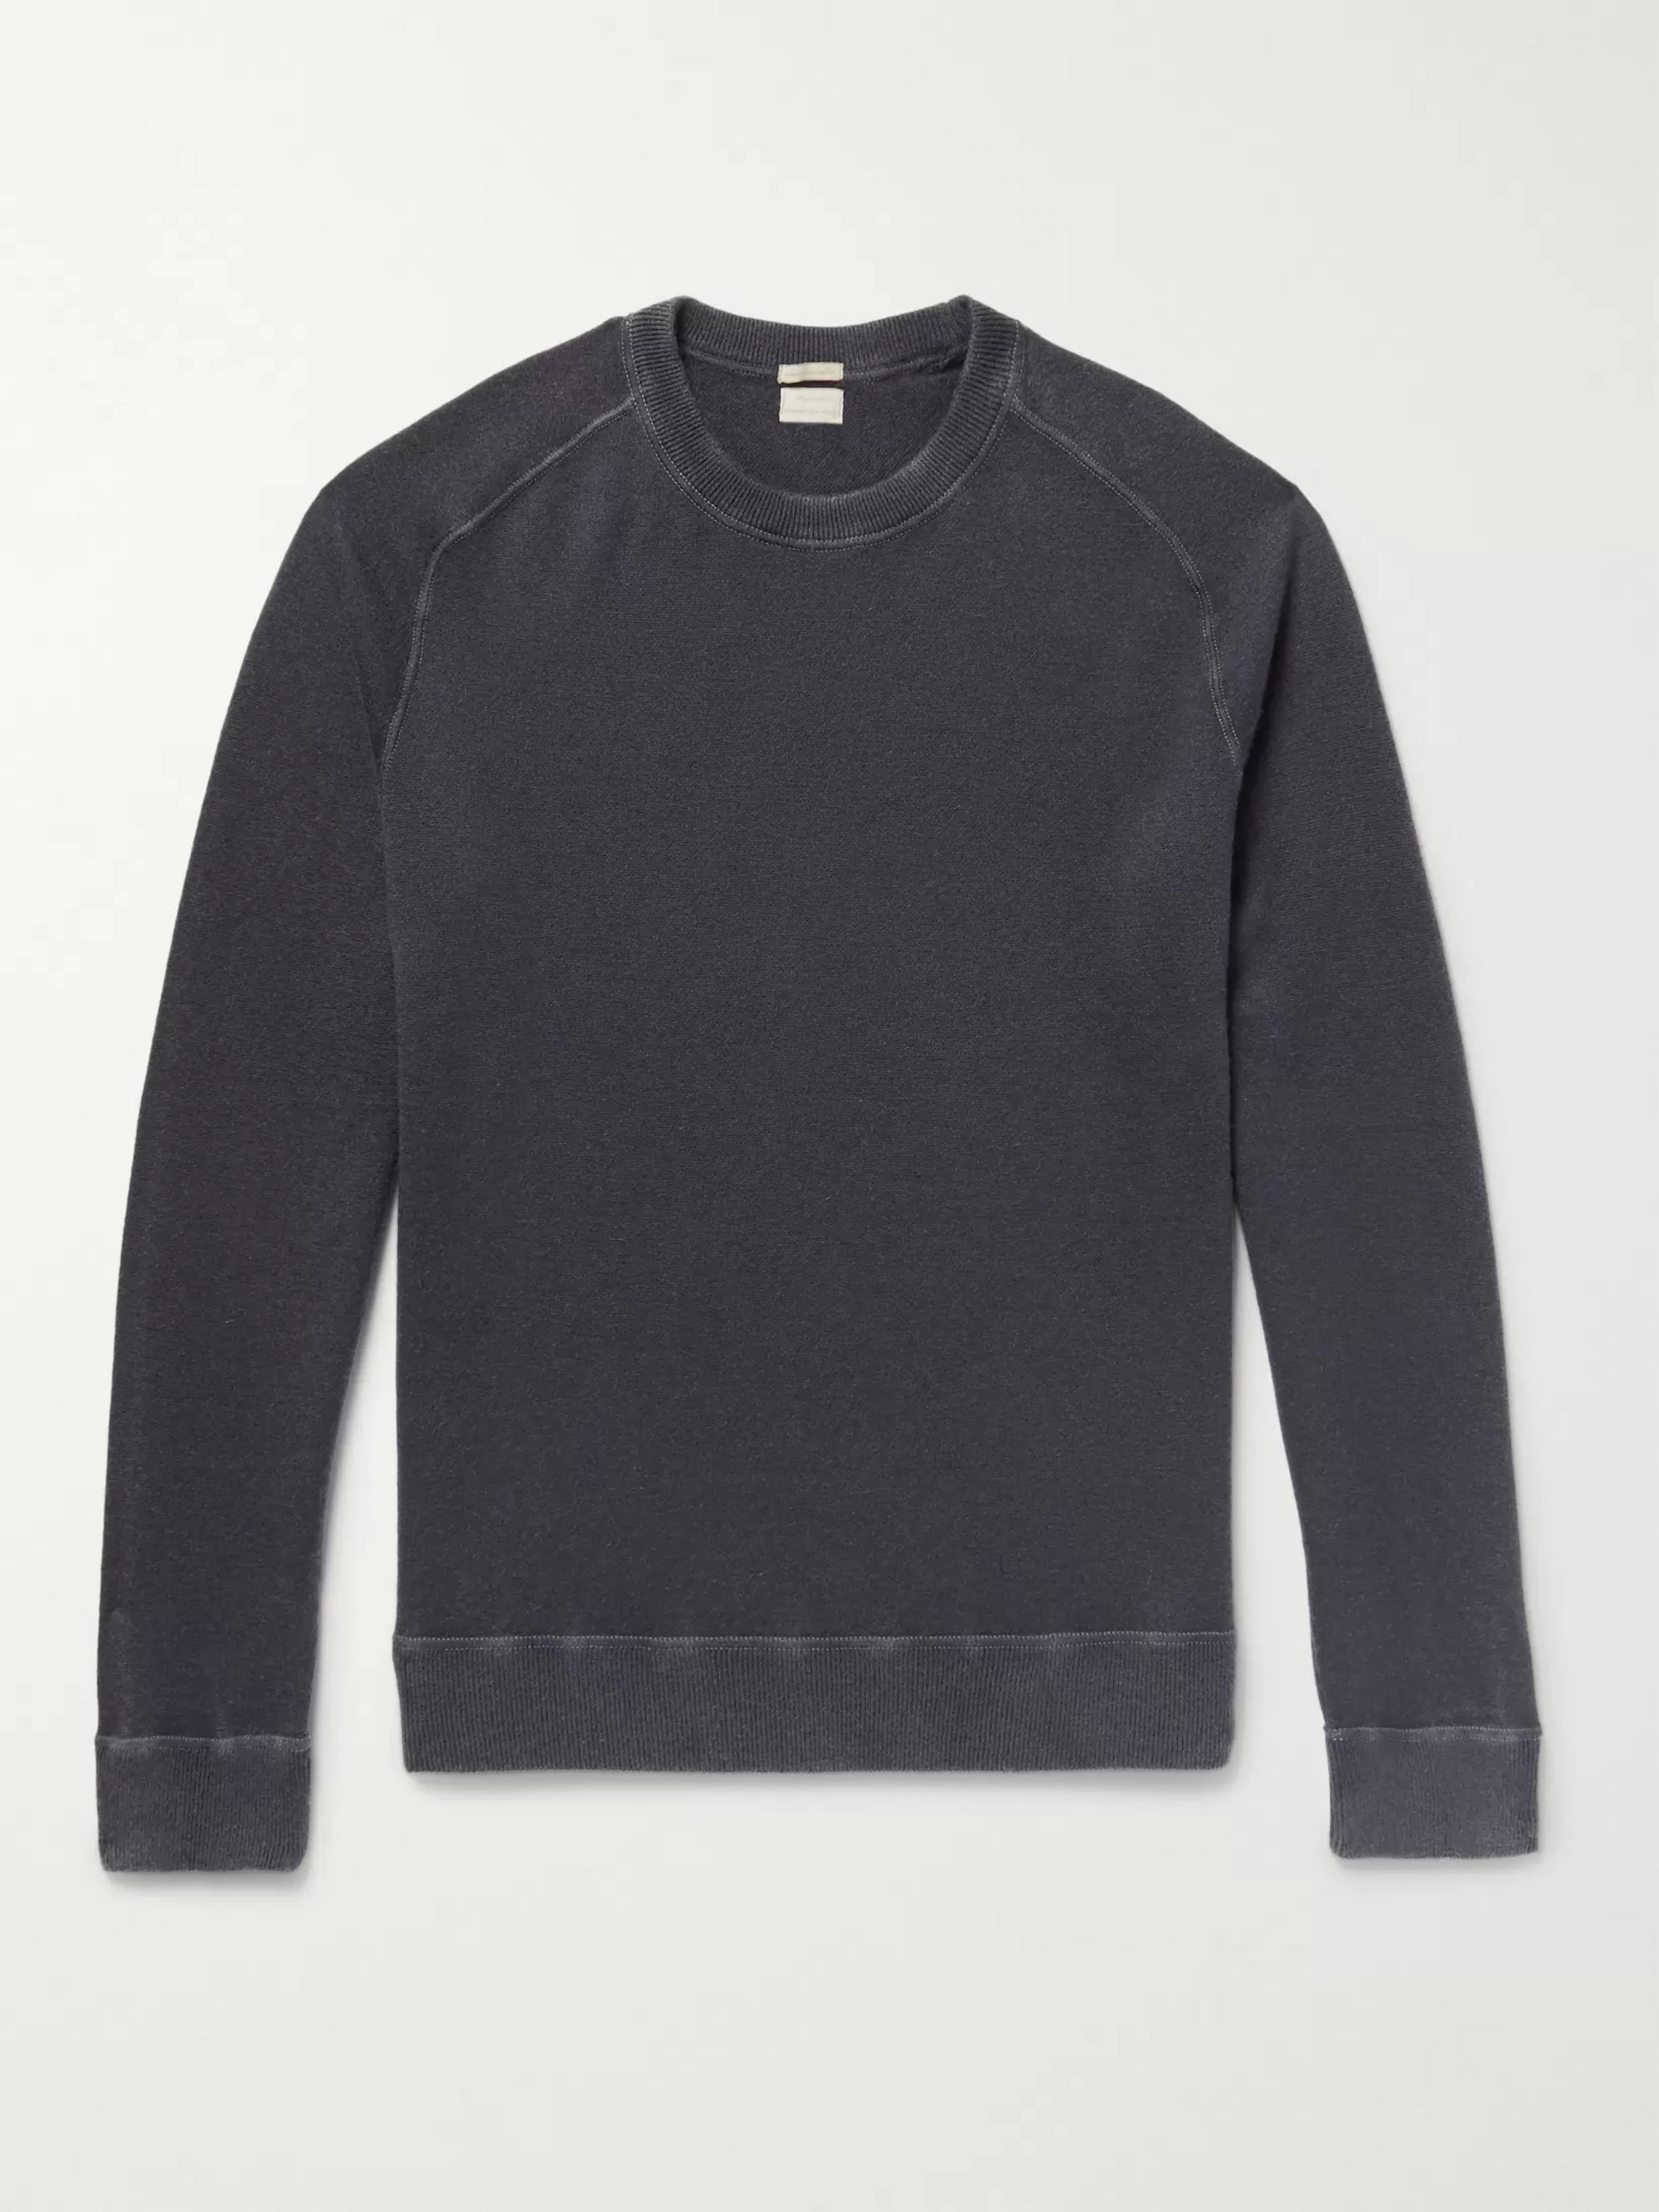 Massimo Alba Garment-Dyed Cashmere Sweater